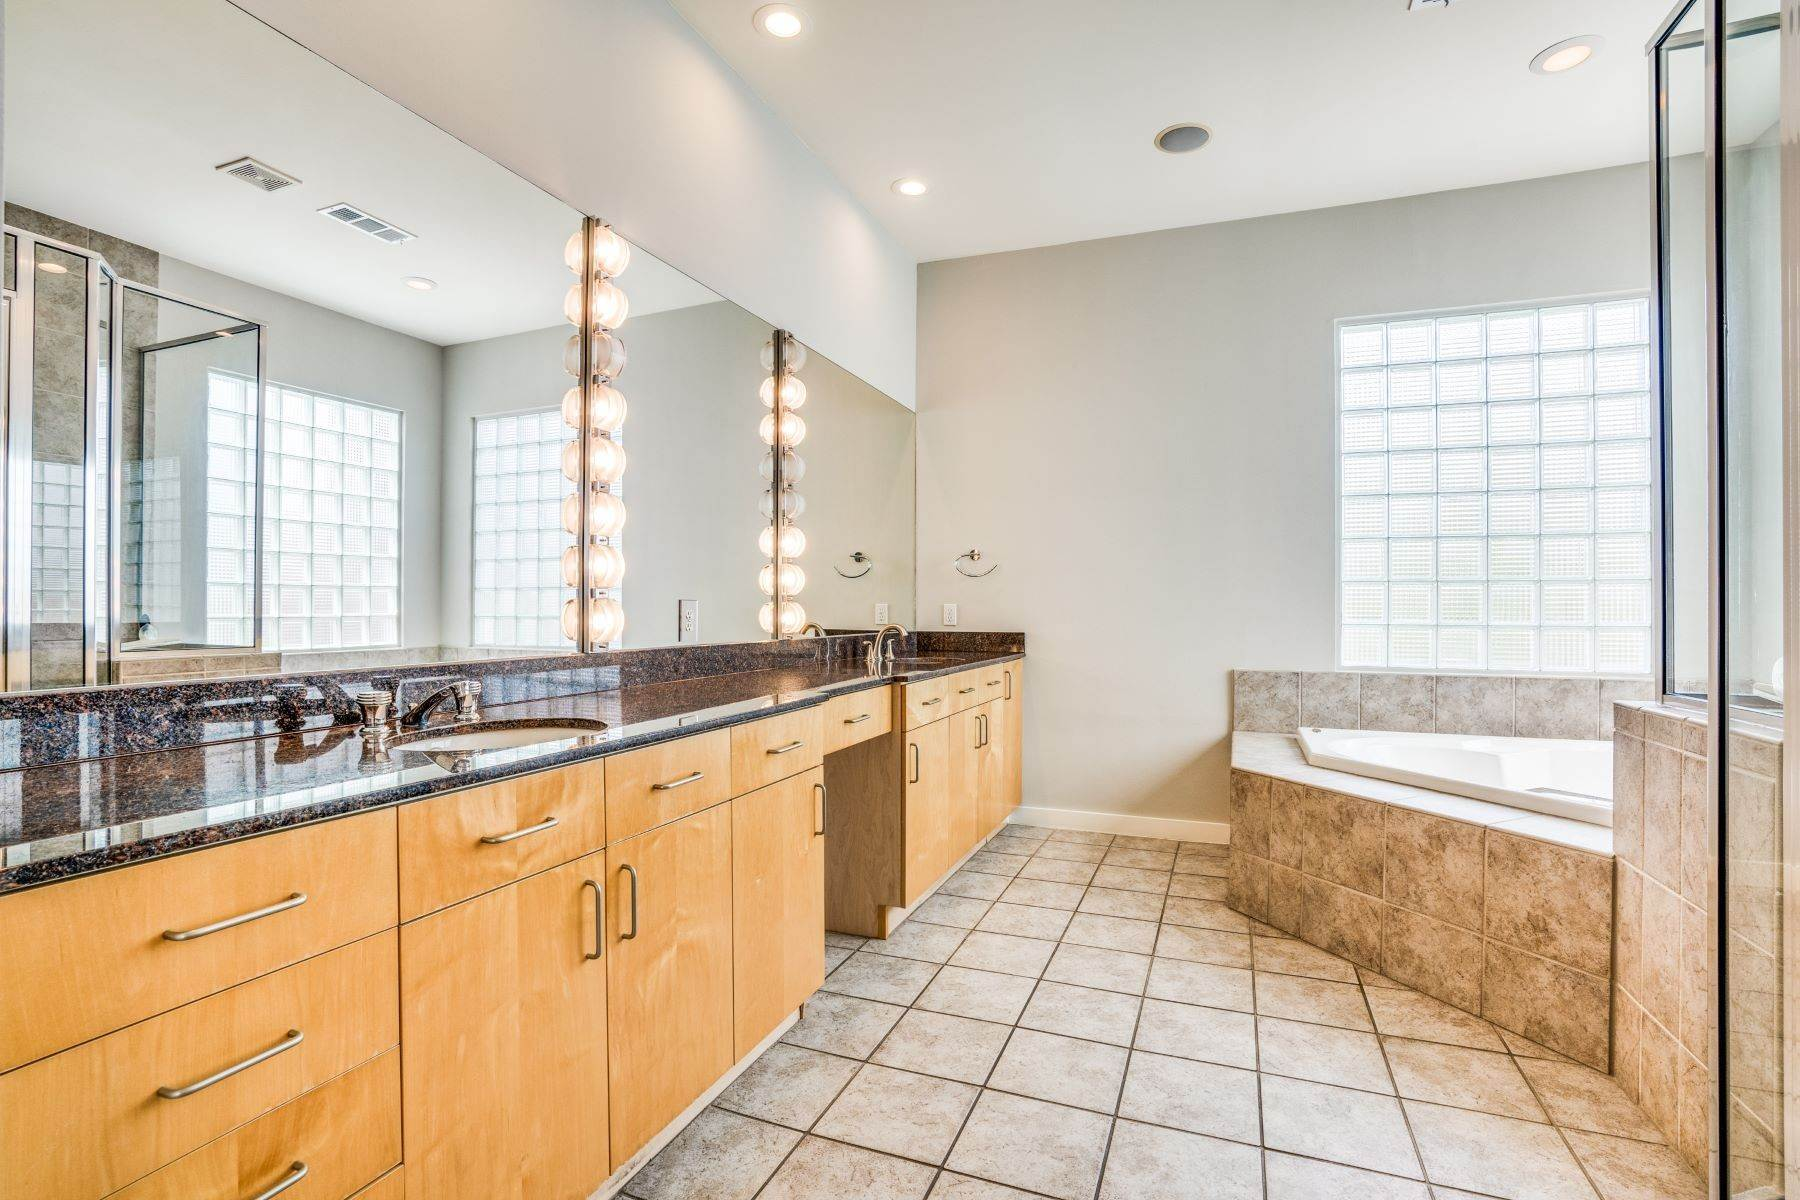 17. townhouses for Sale at Clean, Contemporary, Open Concept 3-Bedroom Townhouse 3925 Gilbert Avenue, #C Dallas, Texas 75219 United States